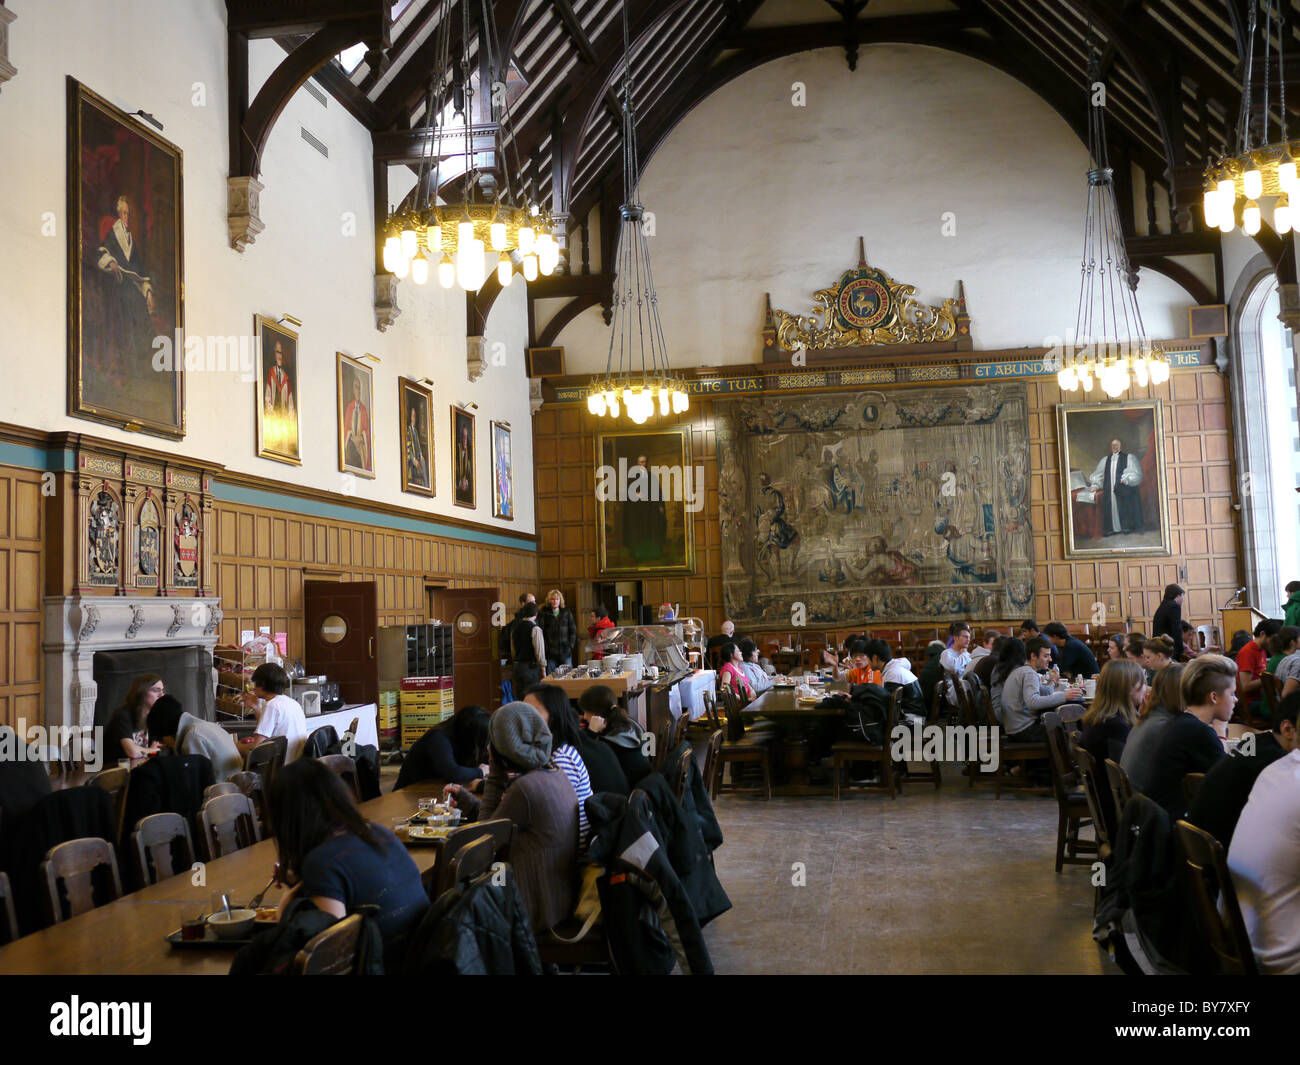 University of toronto trinity college dining hall stock for U of t dining hall